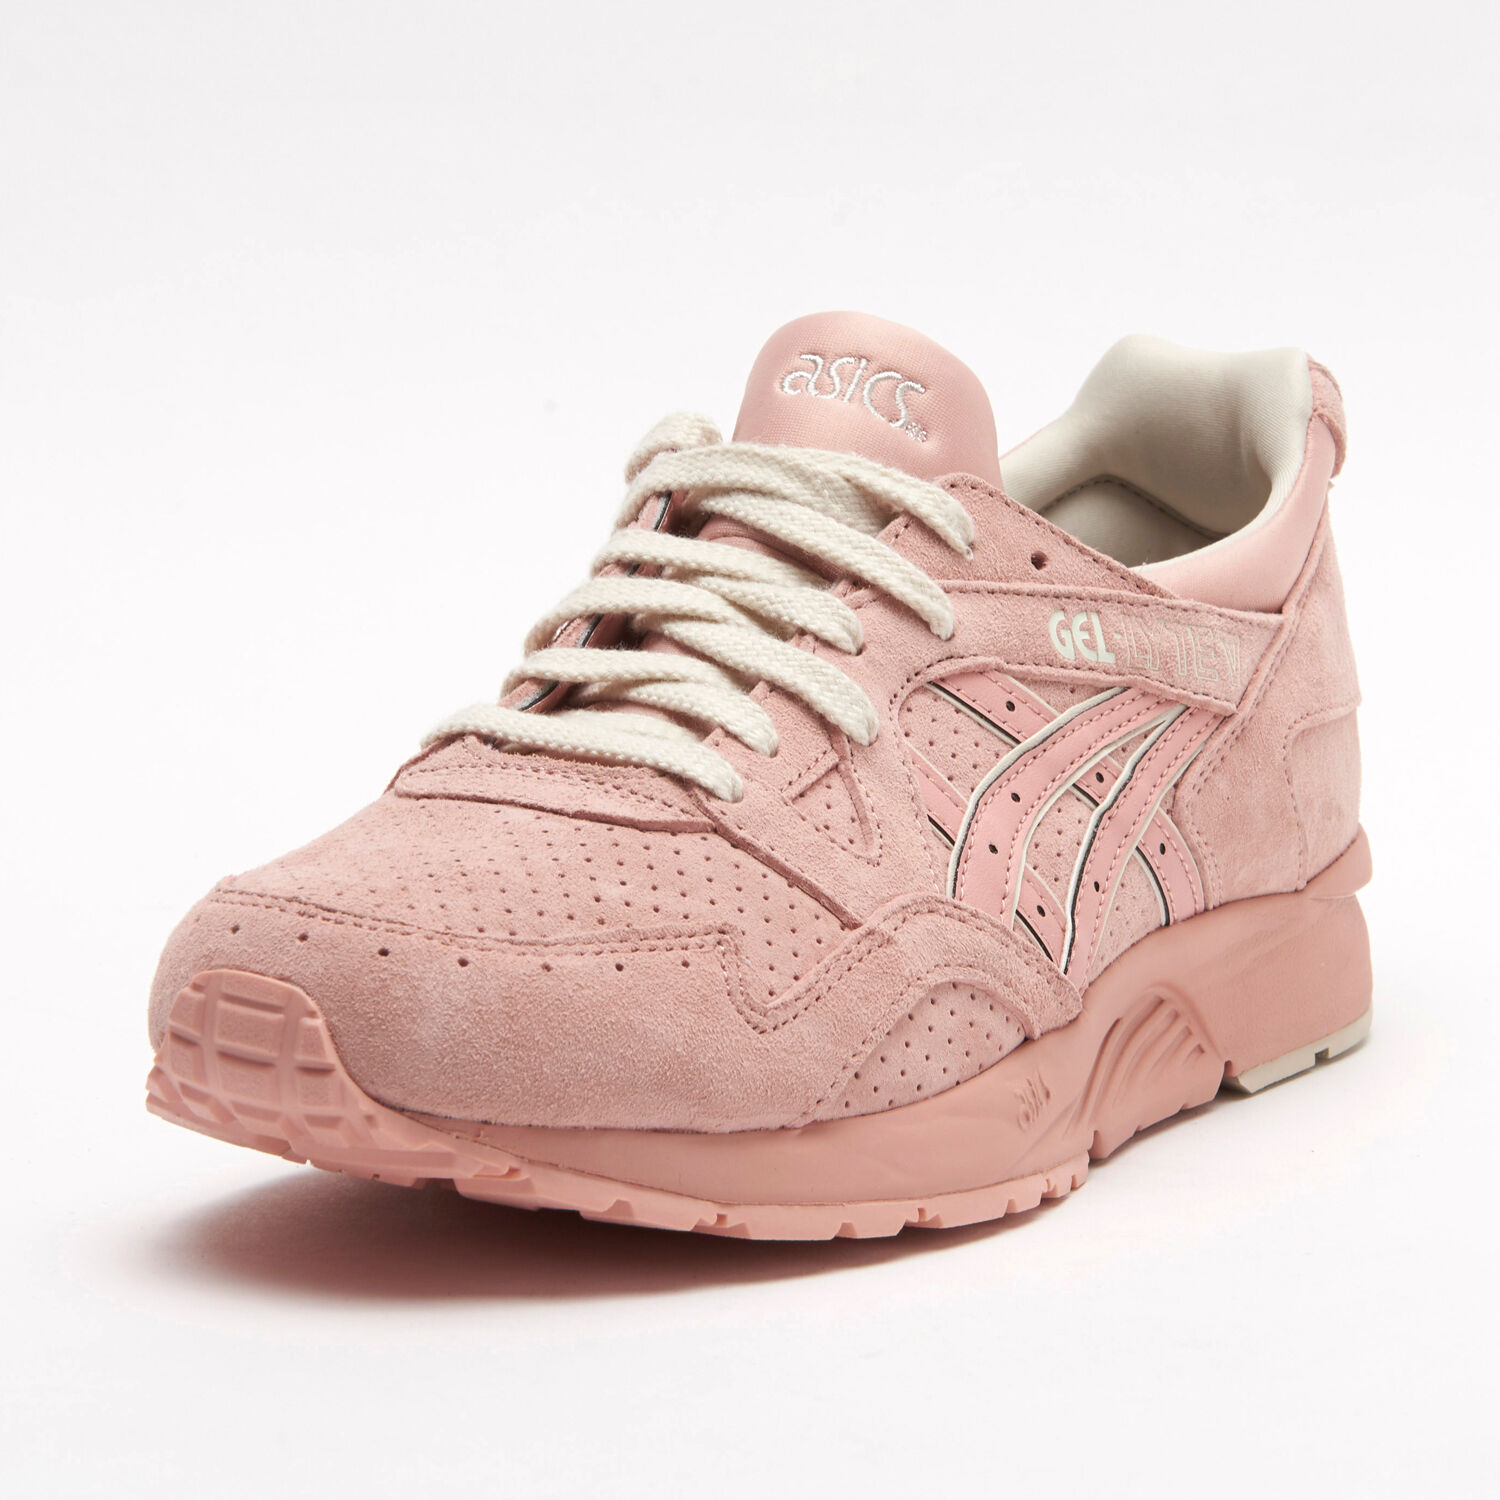 asics in beige